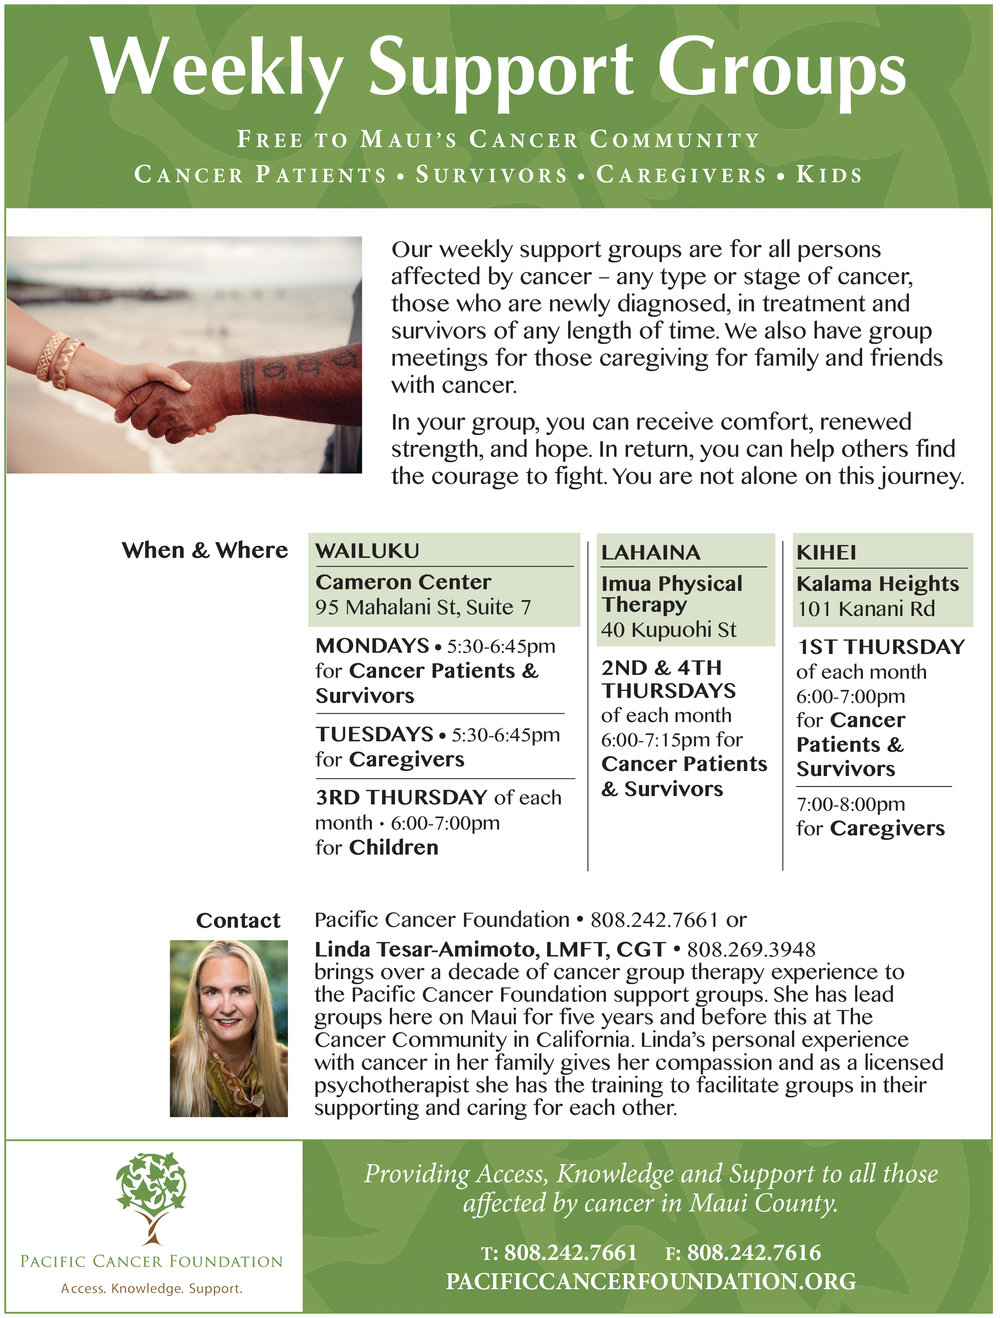 Weekly Support Groups Flyer.jpg